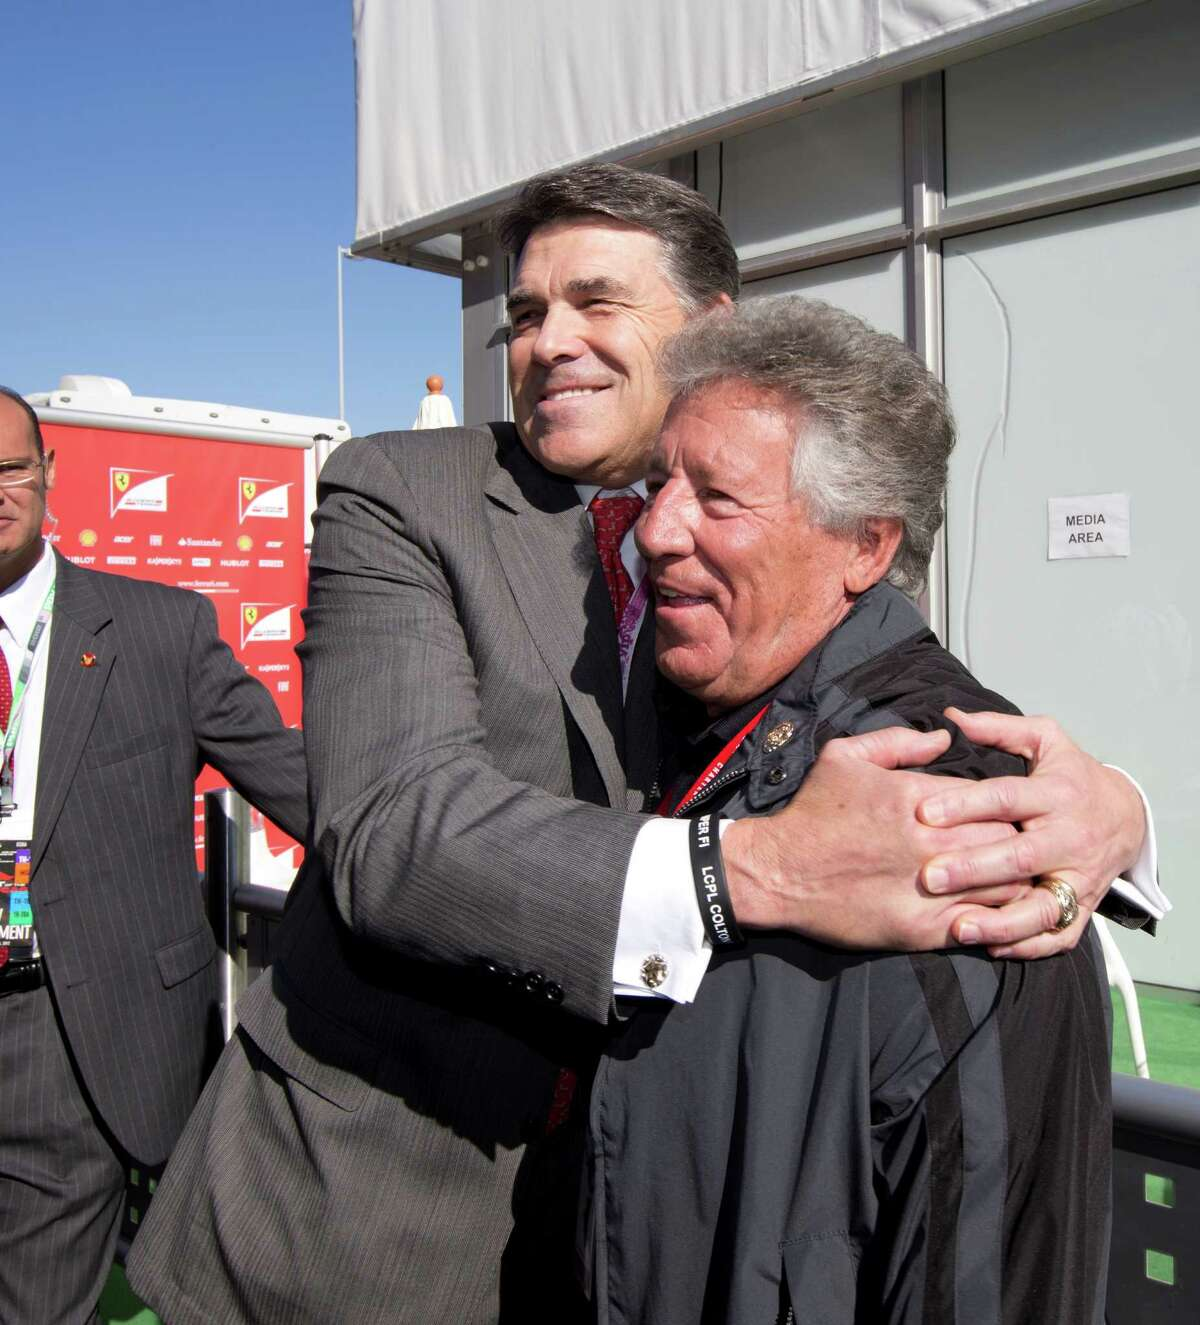 Gov. Rick Perry, left, was on hand last November at the inaugural United States Grand Prix in Austin to greet VIPs such as legendary driver Mario Andretti.